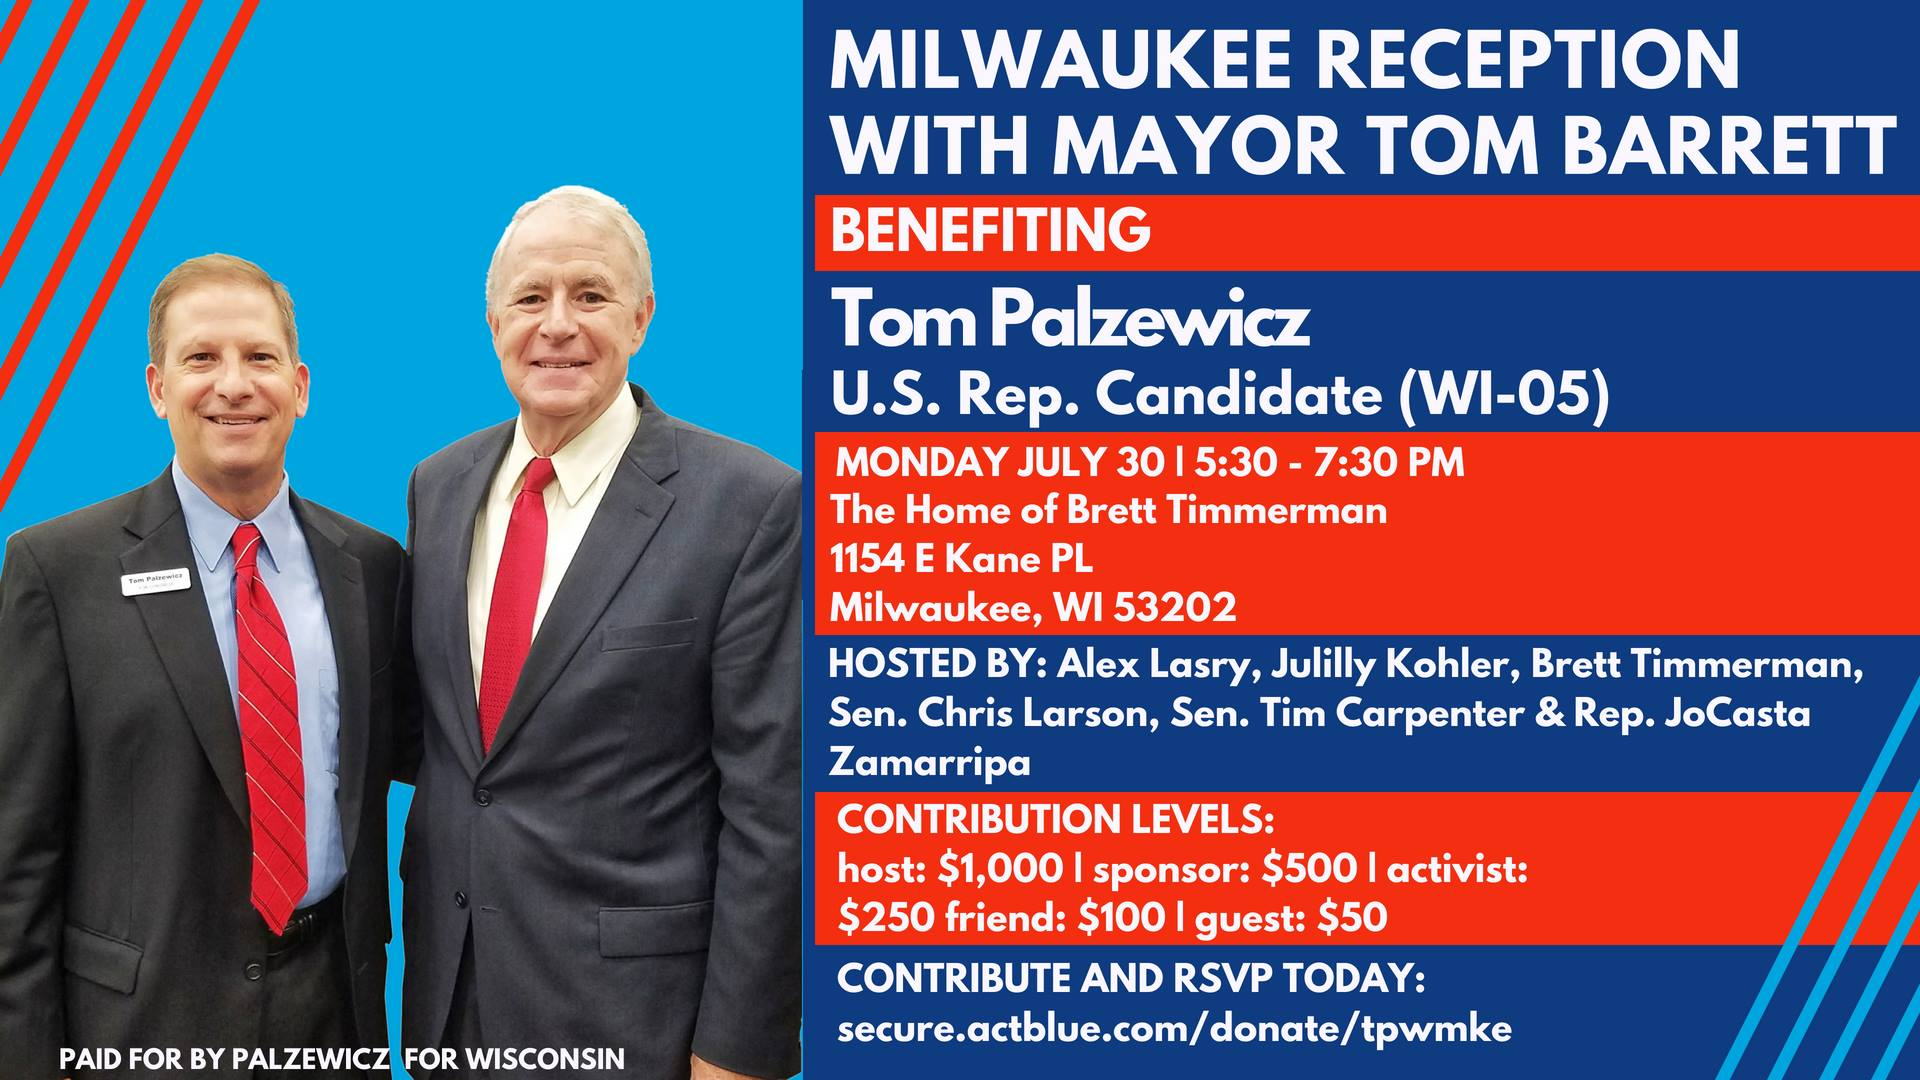 "Milwaukee Reception with Mayor Tom Barrett  You're invited to  join Mayor Barrett, along with our hosts Alex Lasry, Brett Timmerman, Julilly Kohler, Sen. Chris Larson, Sen. Tim Carpenter, & Rep. JoCasta Zamarripa for a great night in support of Tom Palzewicz,  congressional candidate (WI-05), for a reception with light snacks, refreshments, and great conversation about bringing responsible leadership back to Washington.   Mayor Barrett recently endorsed Tom's campaign saying: ""   As a Navy veteran and small business owner, Tom Palzewicz has a unique perspective and has proven himself as a leader.    He is the right choice to represent the good people of the 5th congressional district,""    Monday, July 30th, 5:30 PM to 7:30 PM    Home of Brett Timmerman:   1154 E Kane Pl, Milwaukee, WI 53202    Hosted by: Alex Lasry, Brett Timmerman, Julilly Kohler, Sen. Chris Larson, Sen. Tim Carpenter, & Rep. JoCasta Zamarripa   Contribution Levels:  Host: $1000 